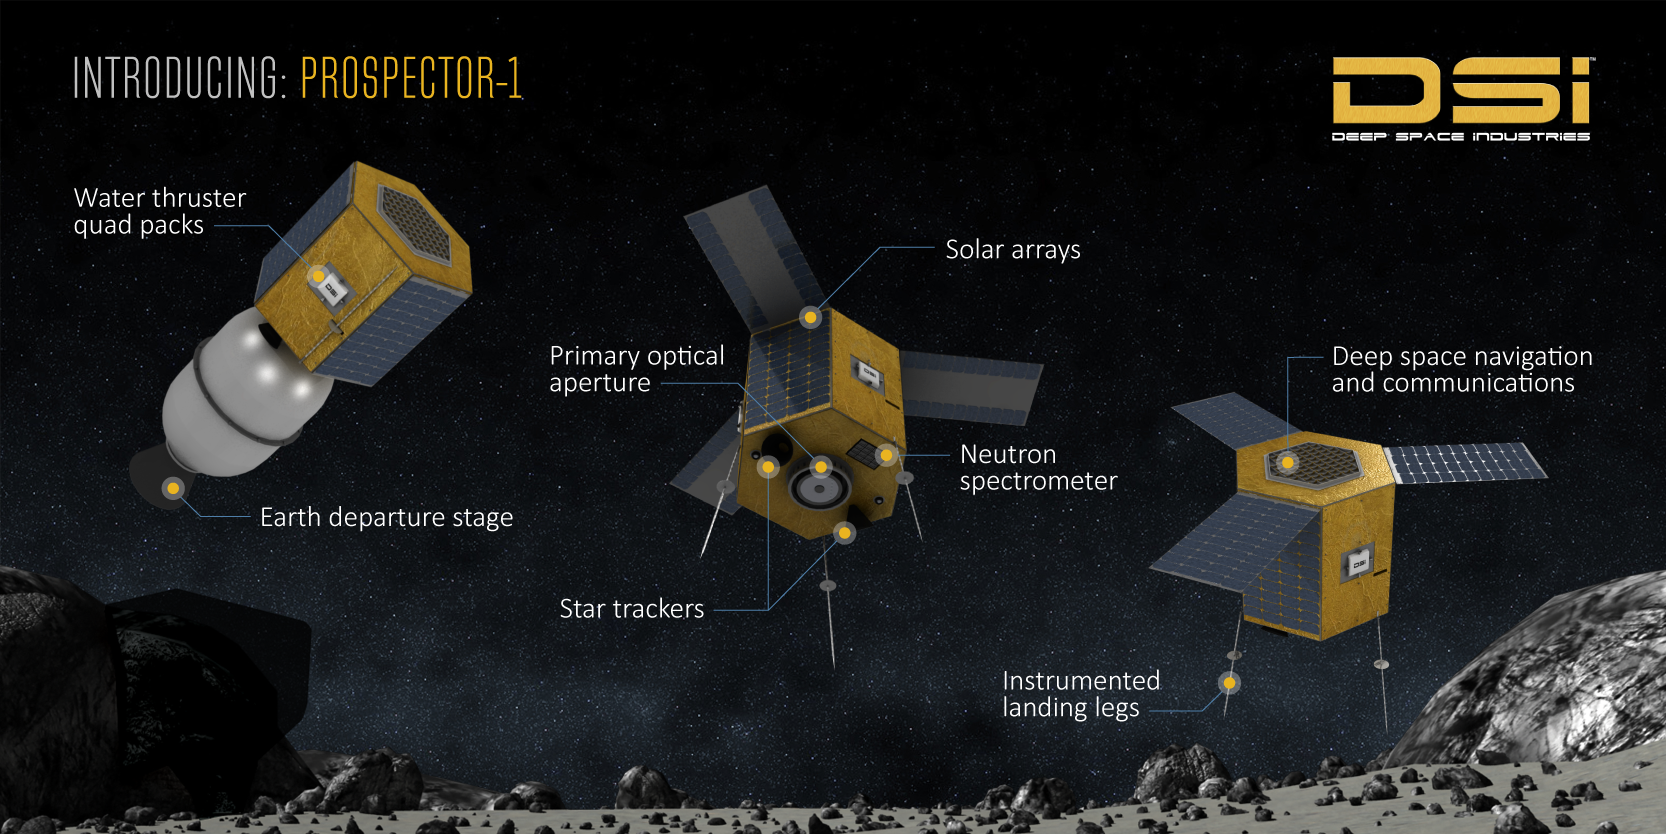 American asteroid mining company